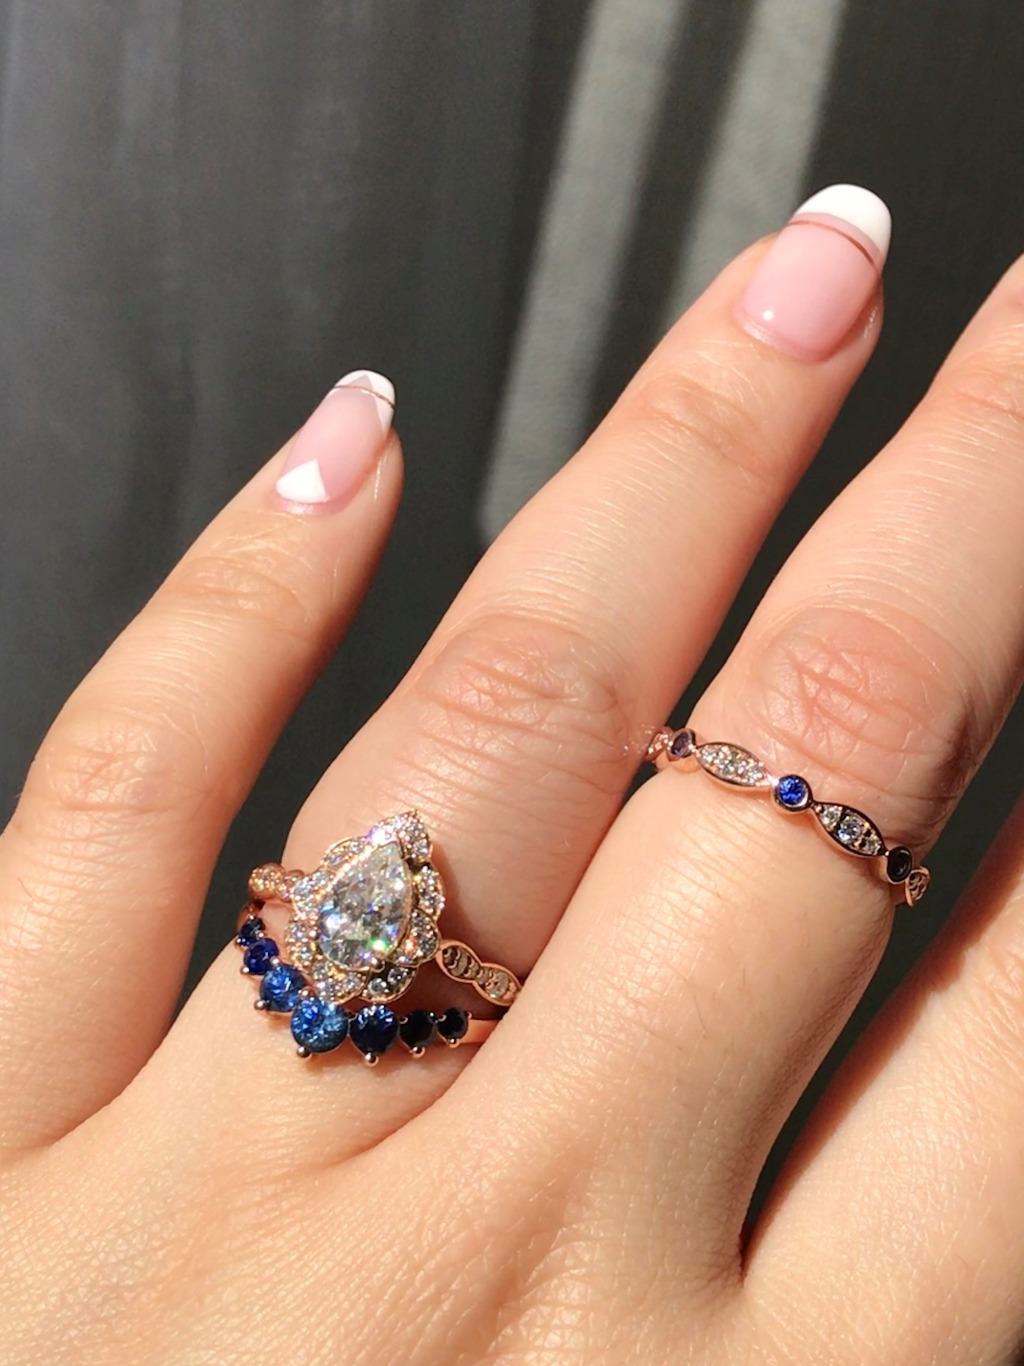 Mix and match your bridal set colors, like this Pear Moissanite Vintage Floral Ring with our Gradient Blue Sapphire 7 Stone Wedding